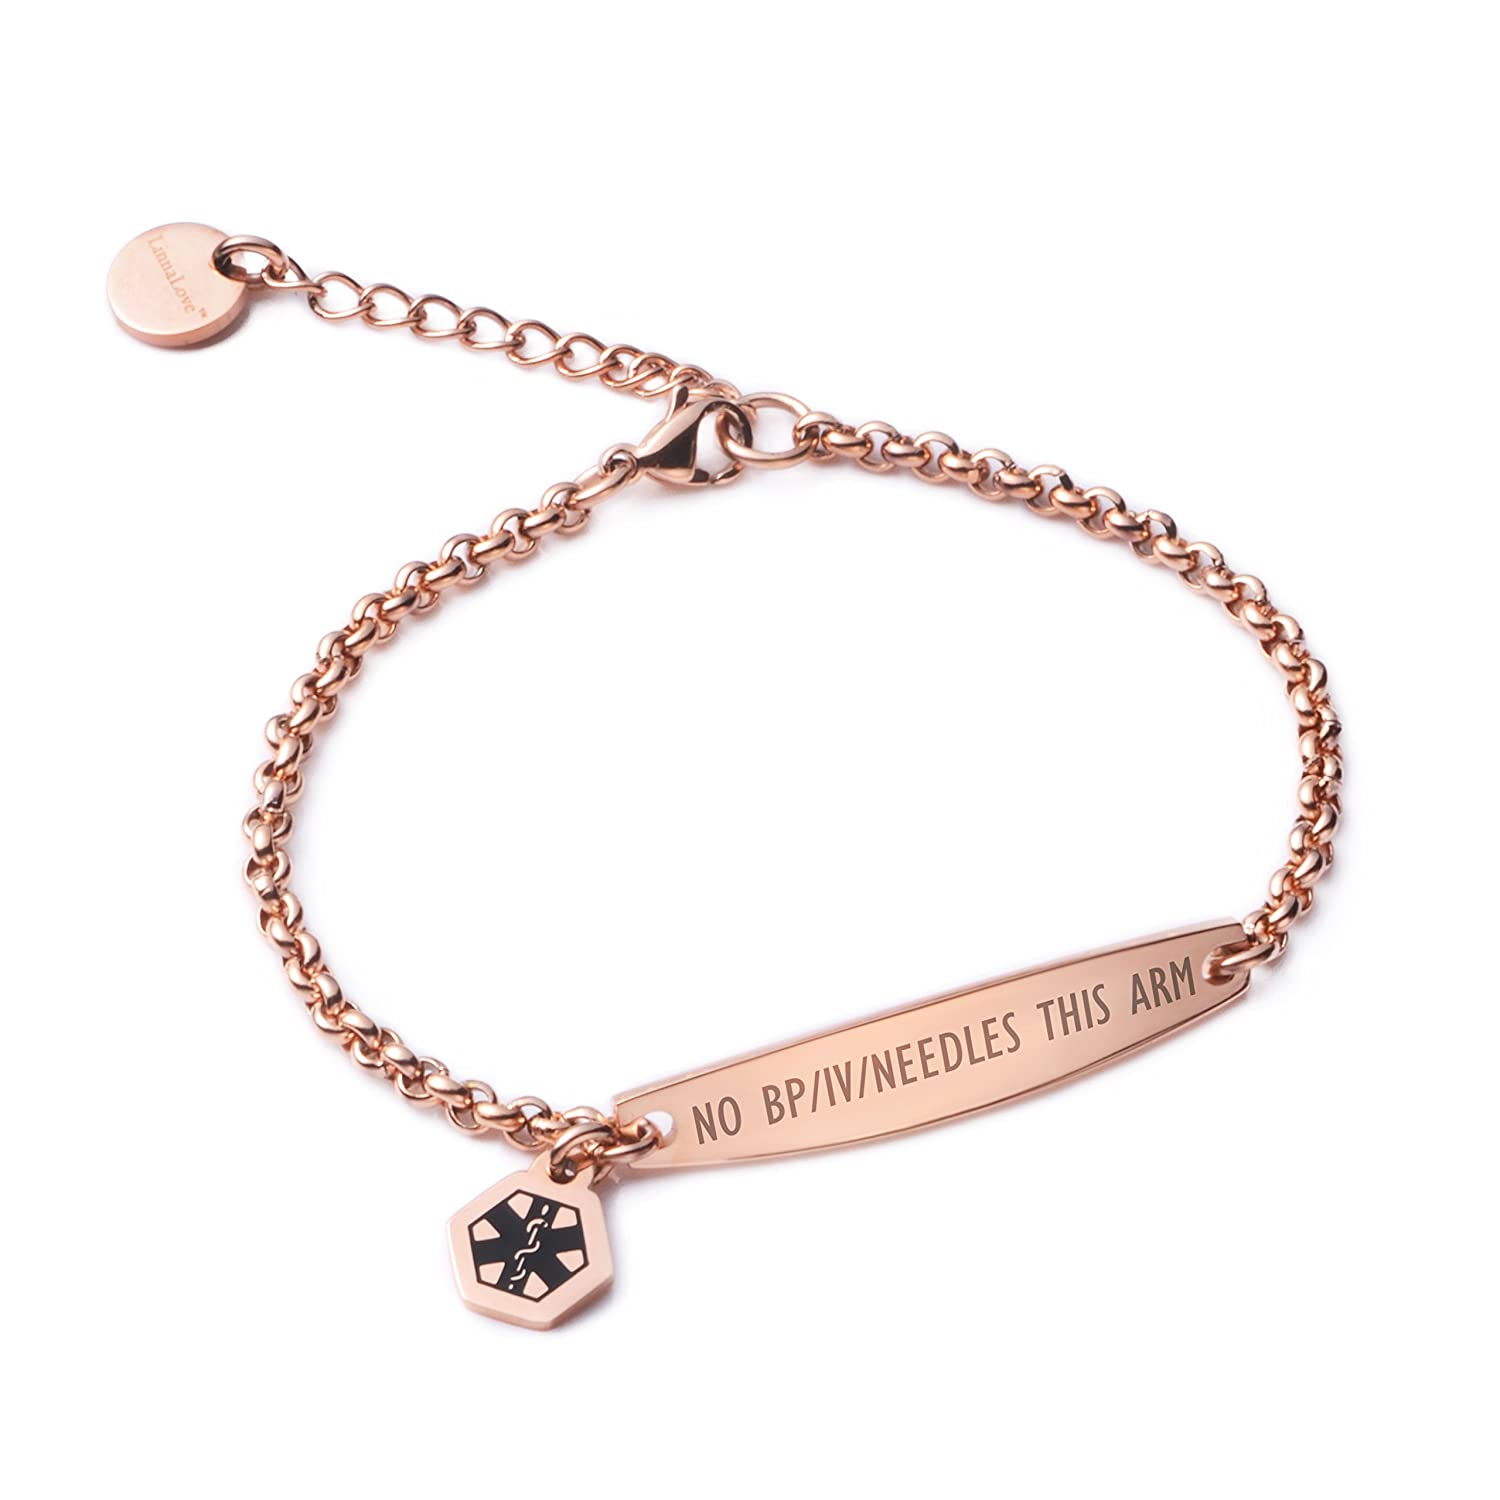 linnalove-Pre-Engraved Rose Gold Simple Rolo Chain Medical id Bracelet for Women & Girl MD1354RG-BLOOD THINNER